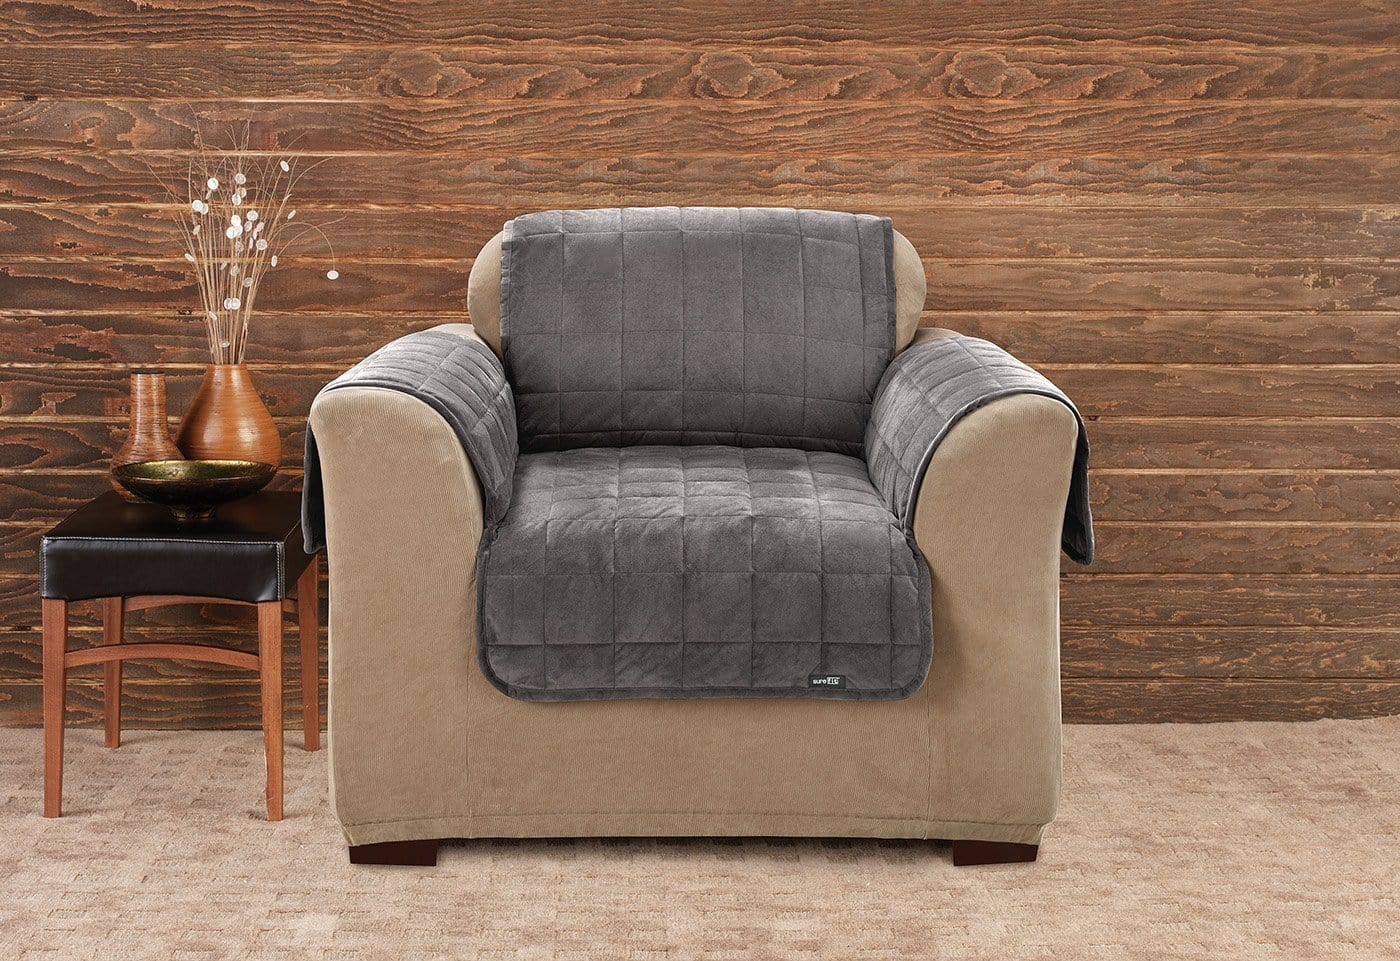 Deluxe Comfort Chair Furniture Cover With Arms Microban® Antimicrobial Pet Furniture Cover Machine Washable - Chair / Dark Gray